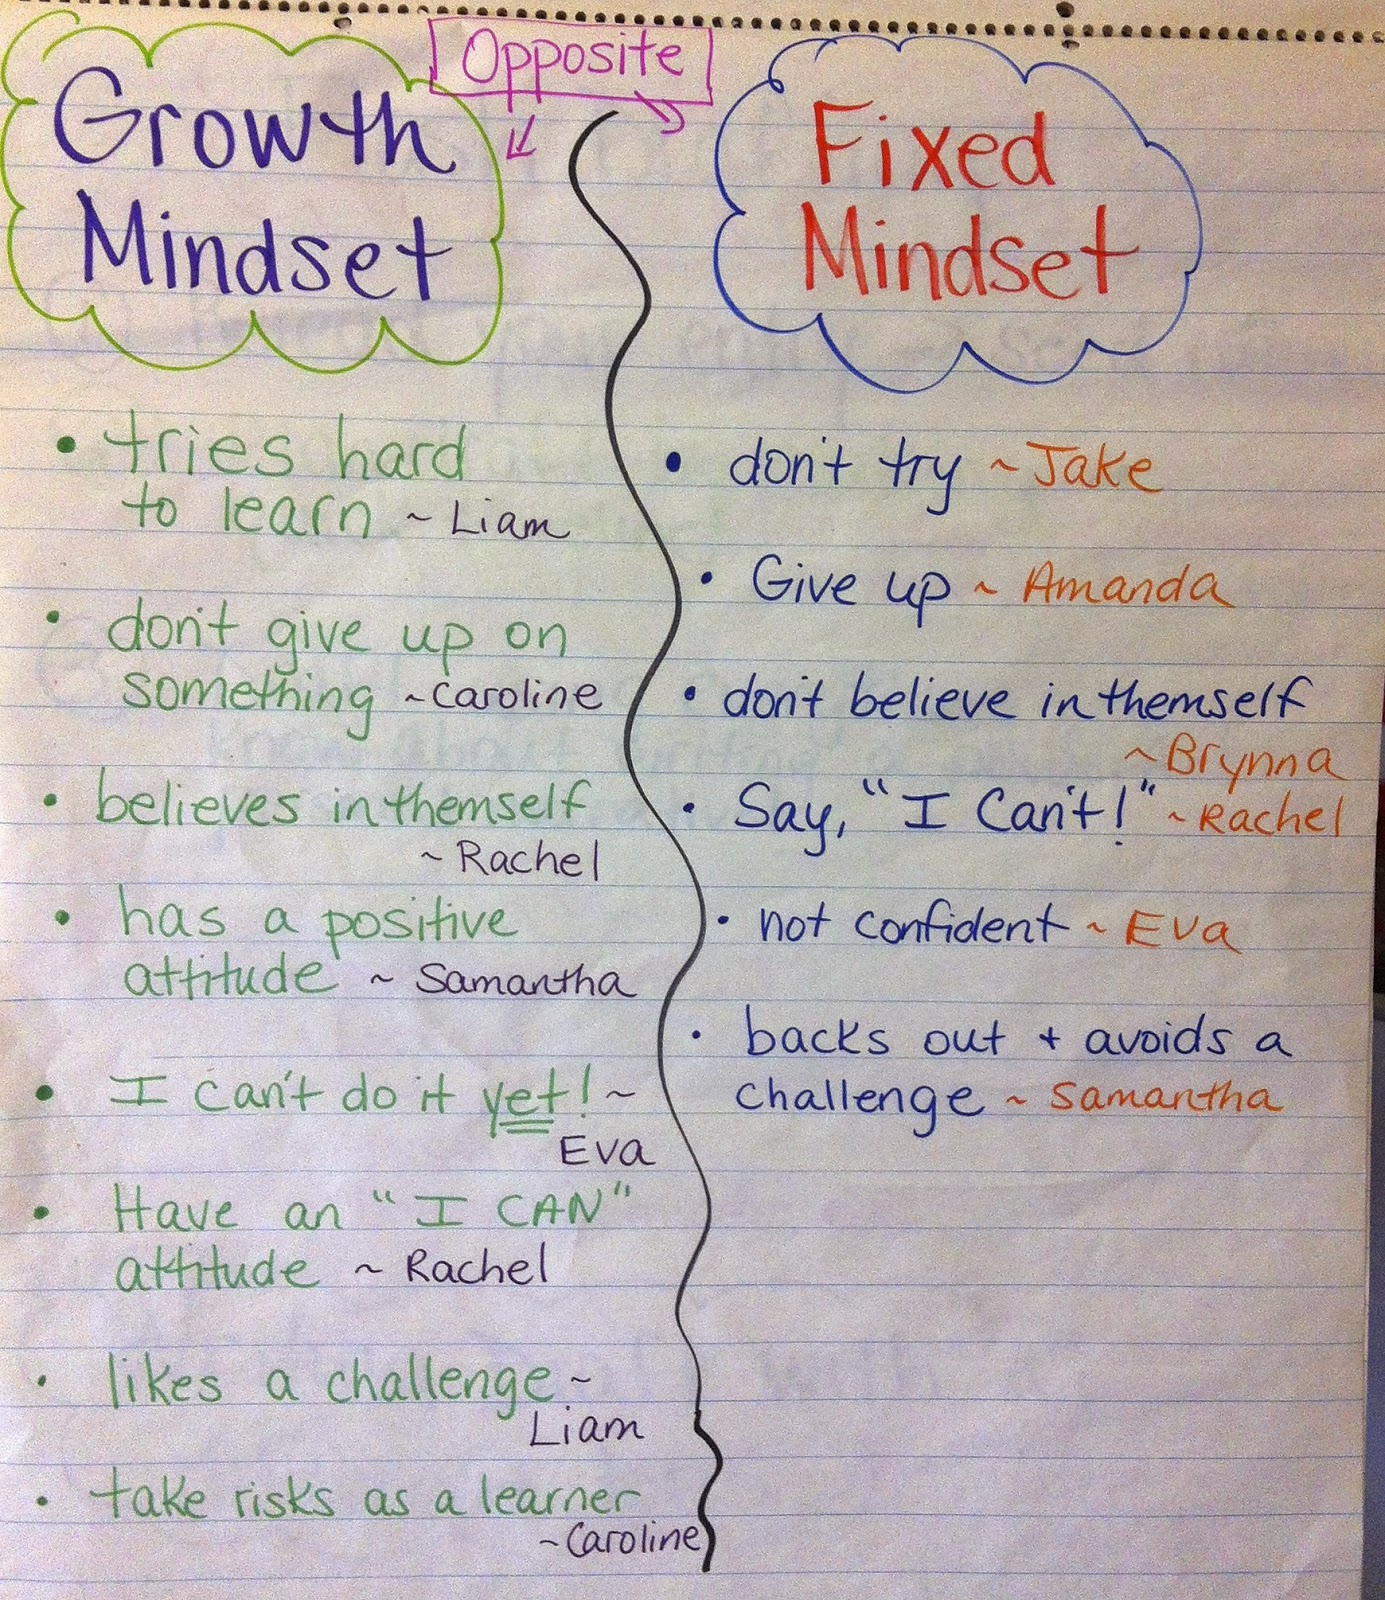 Growth Mindset Quotes On Being Wrong: Two Reflective Teachers: Teaching About Growth Mindset